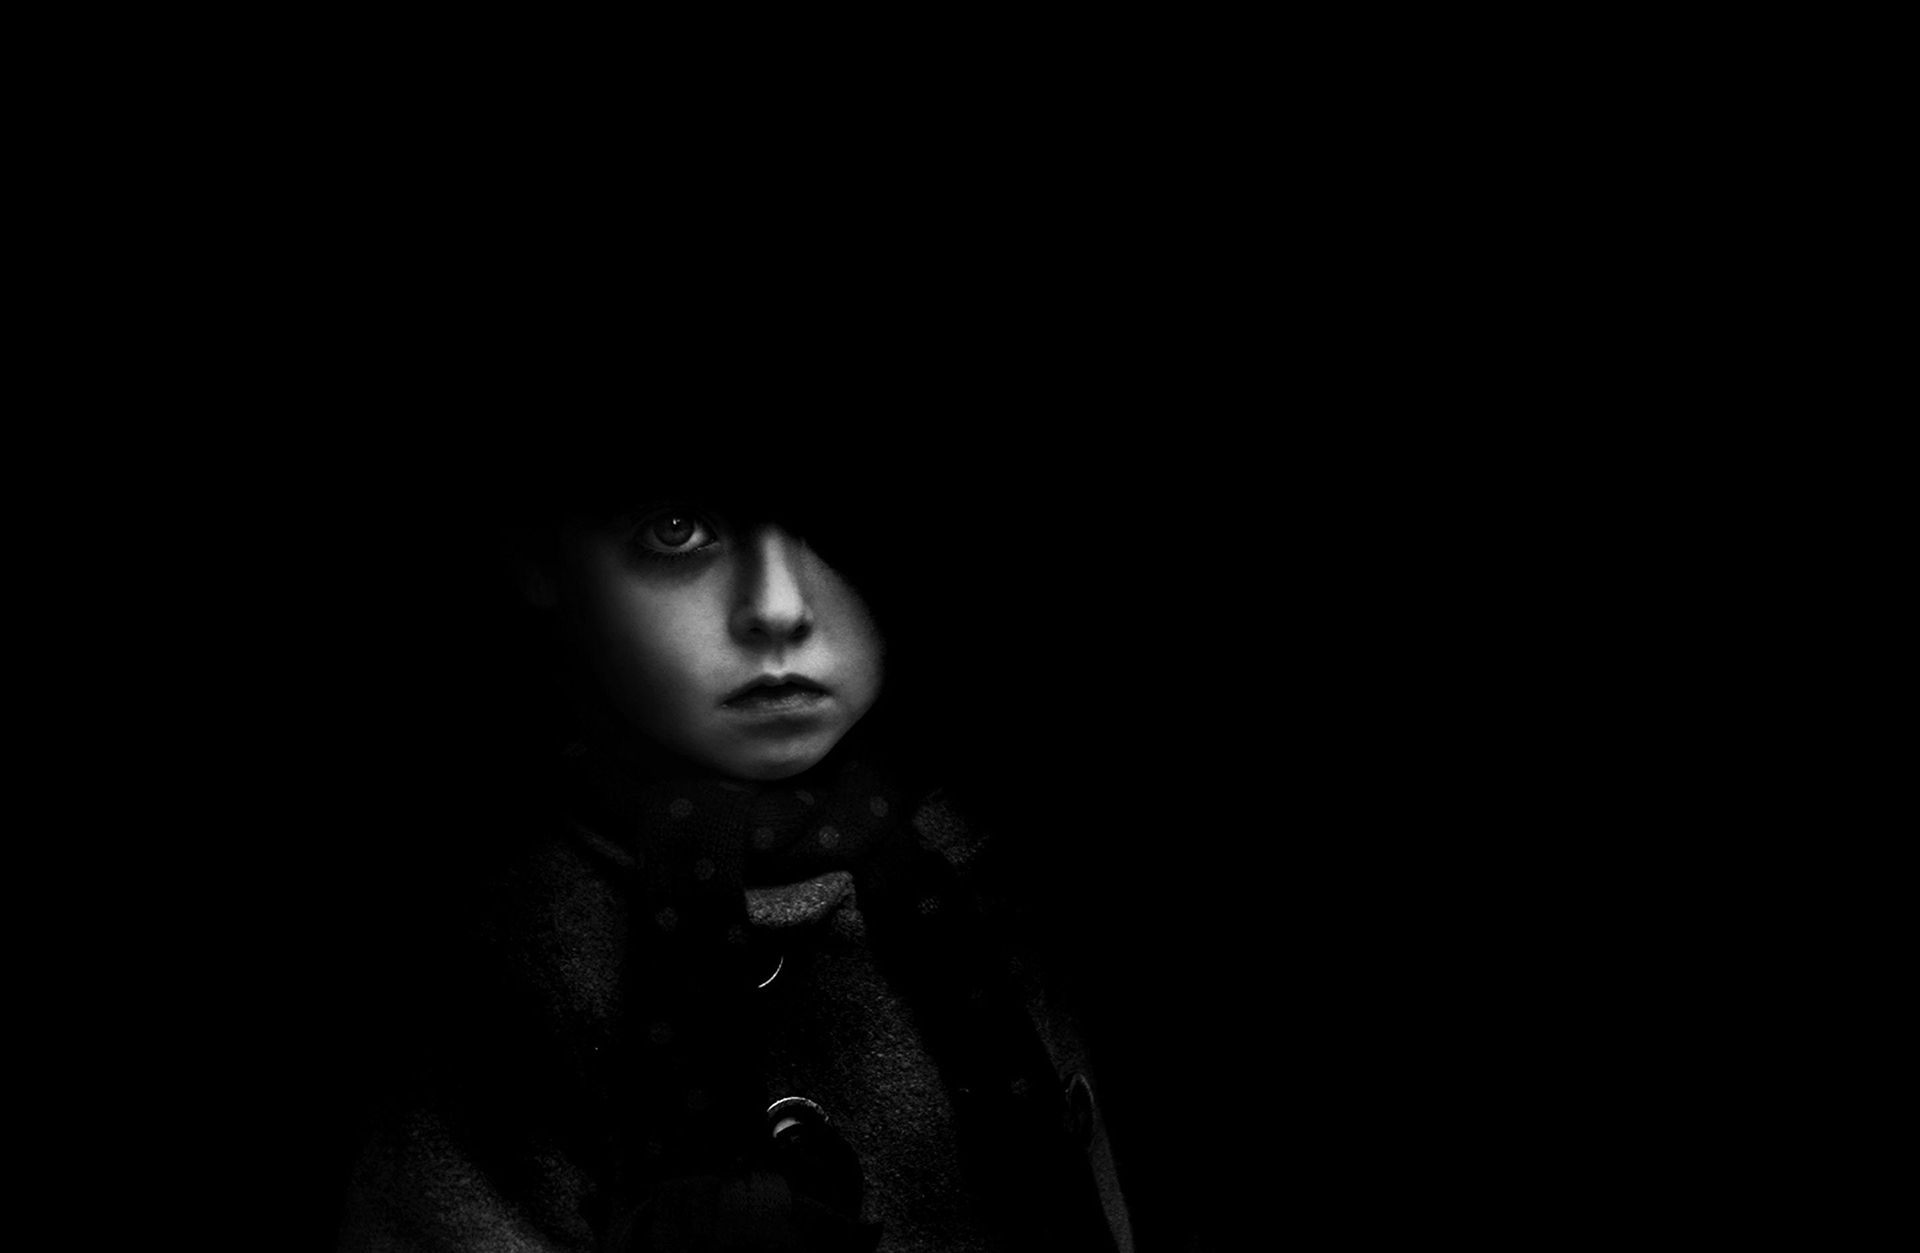 Photograph by Sivan Perets, National Geographic Your Shot